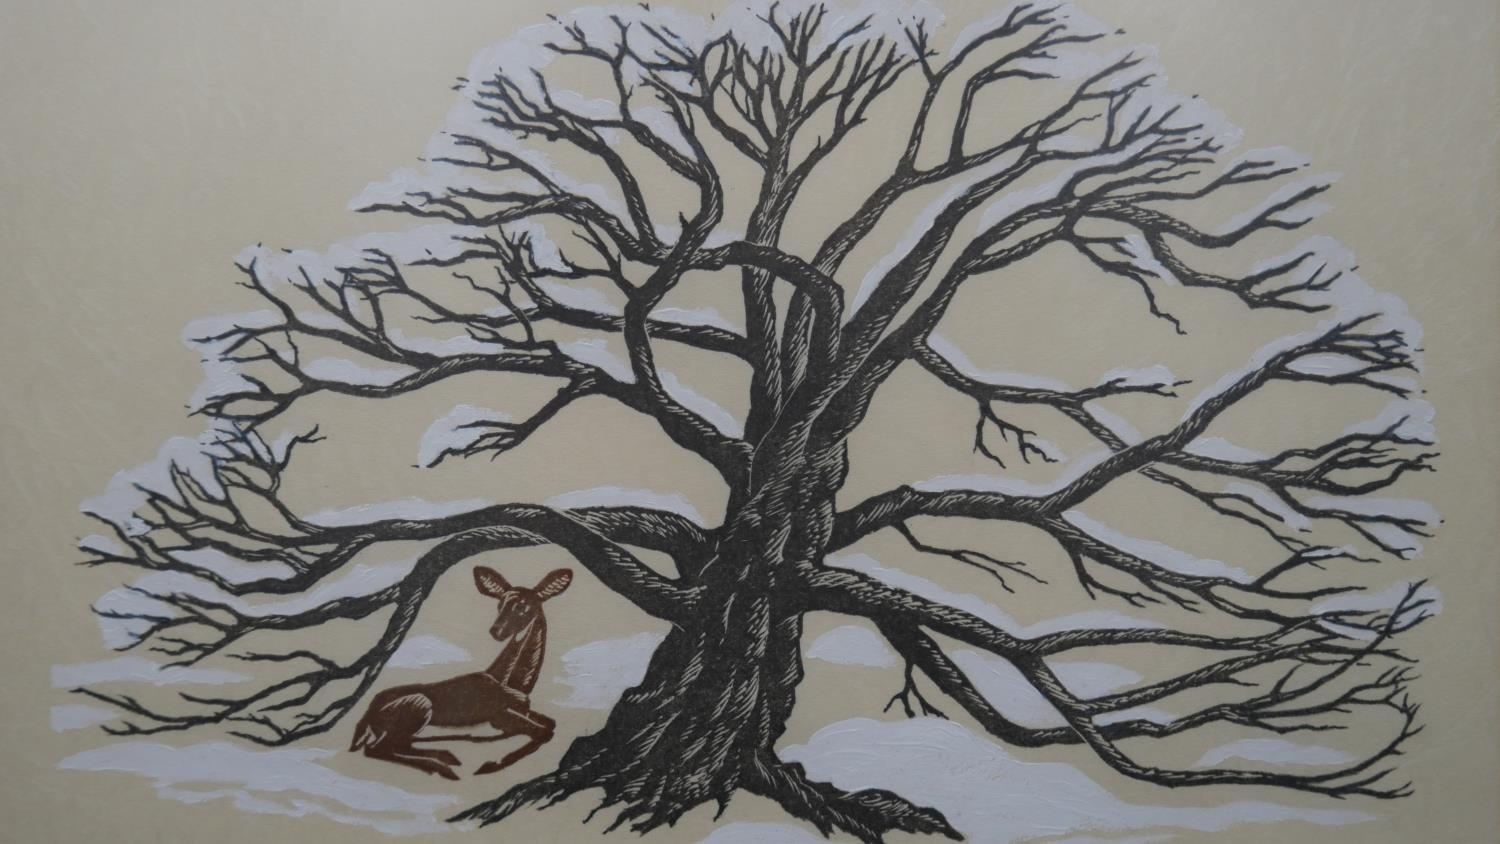 Elfriede Martha Abbe (1919-2012), a signed limited edition woodblock print 29/55, Ancient